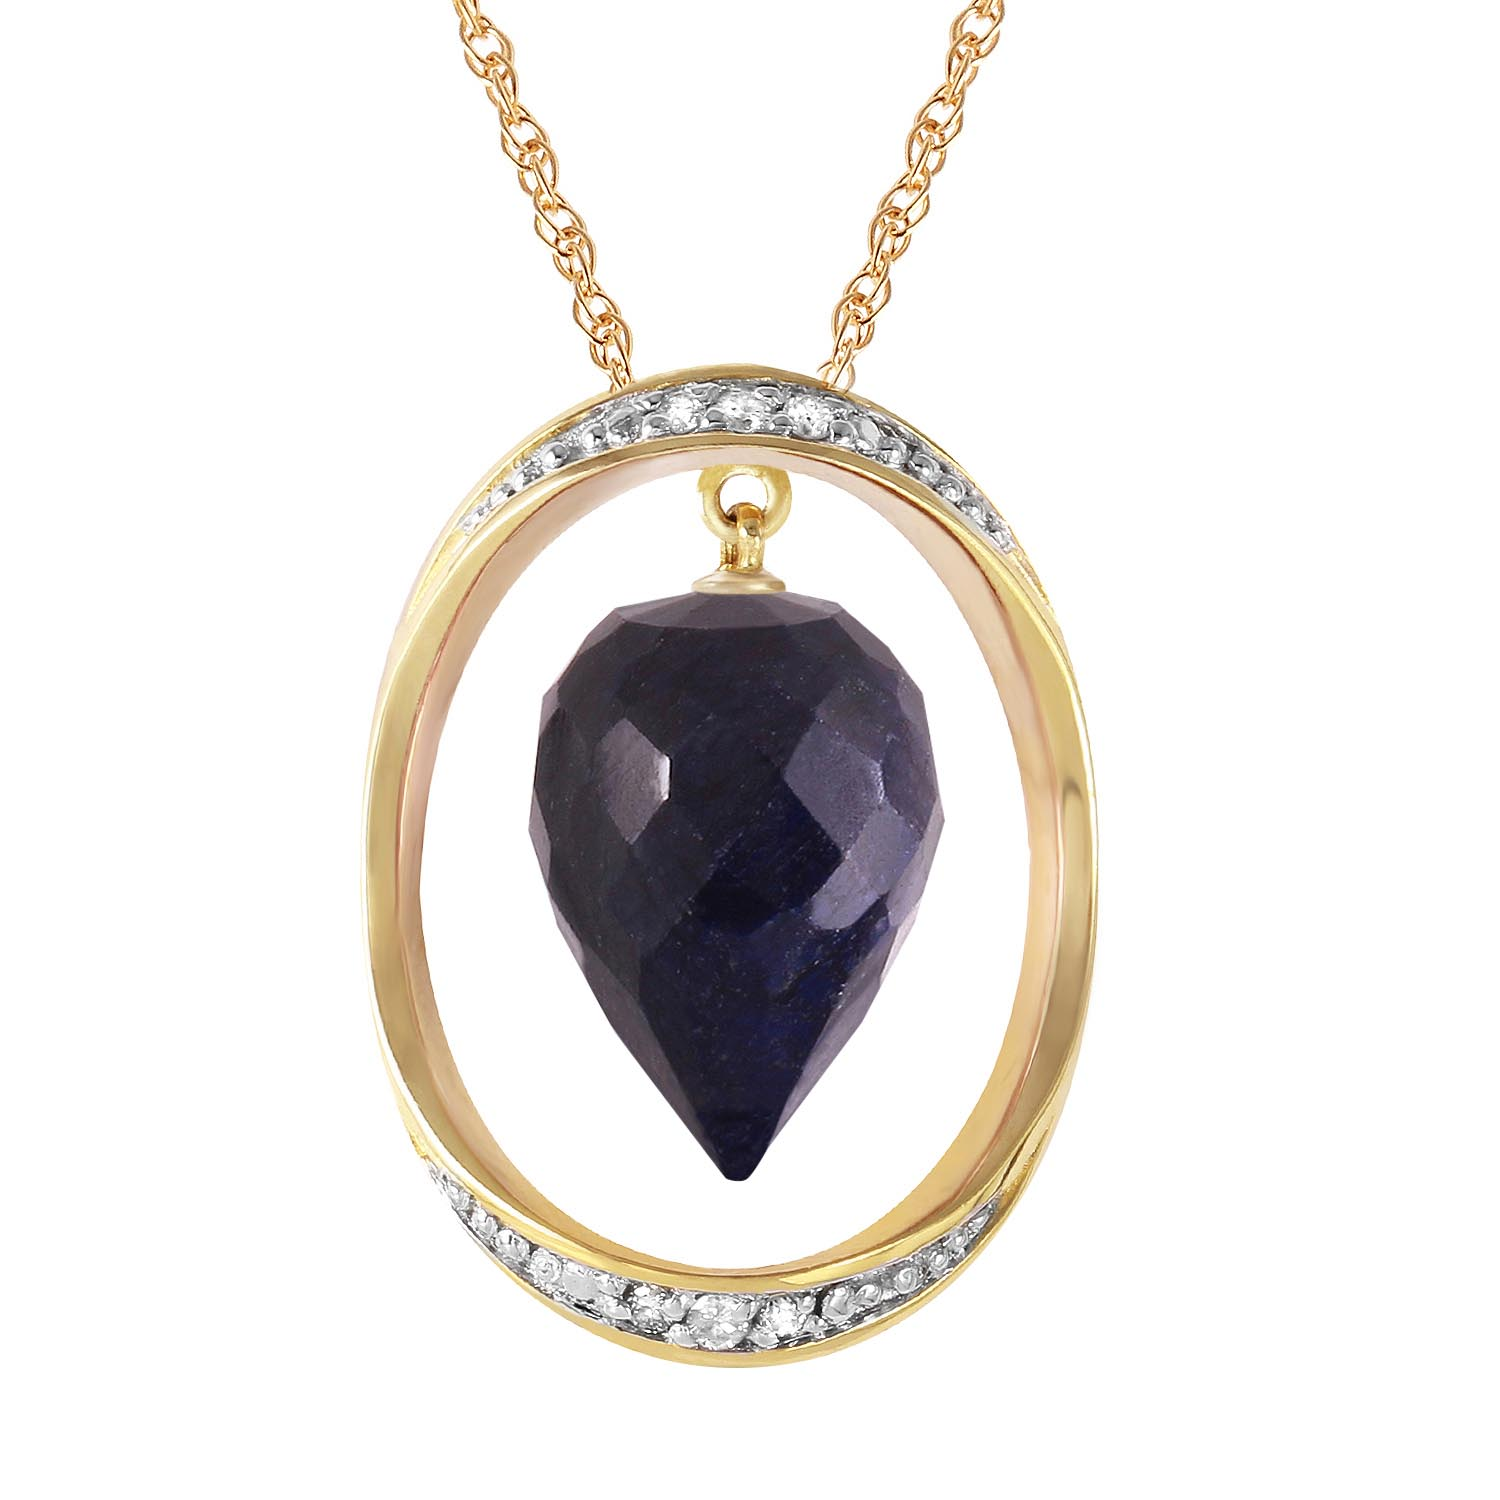 Sapphire and Diamond Pendant Necklace 13.0ct in 9ct Gold